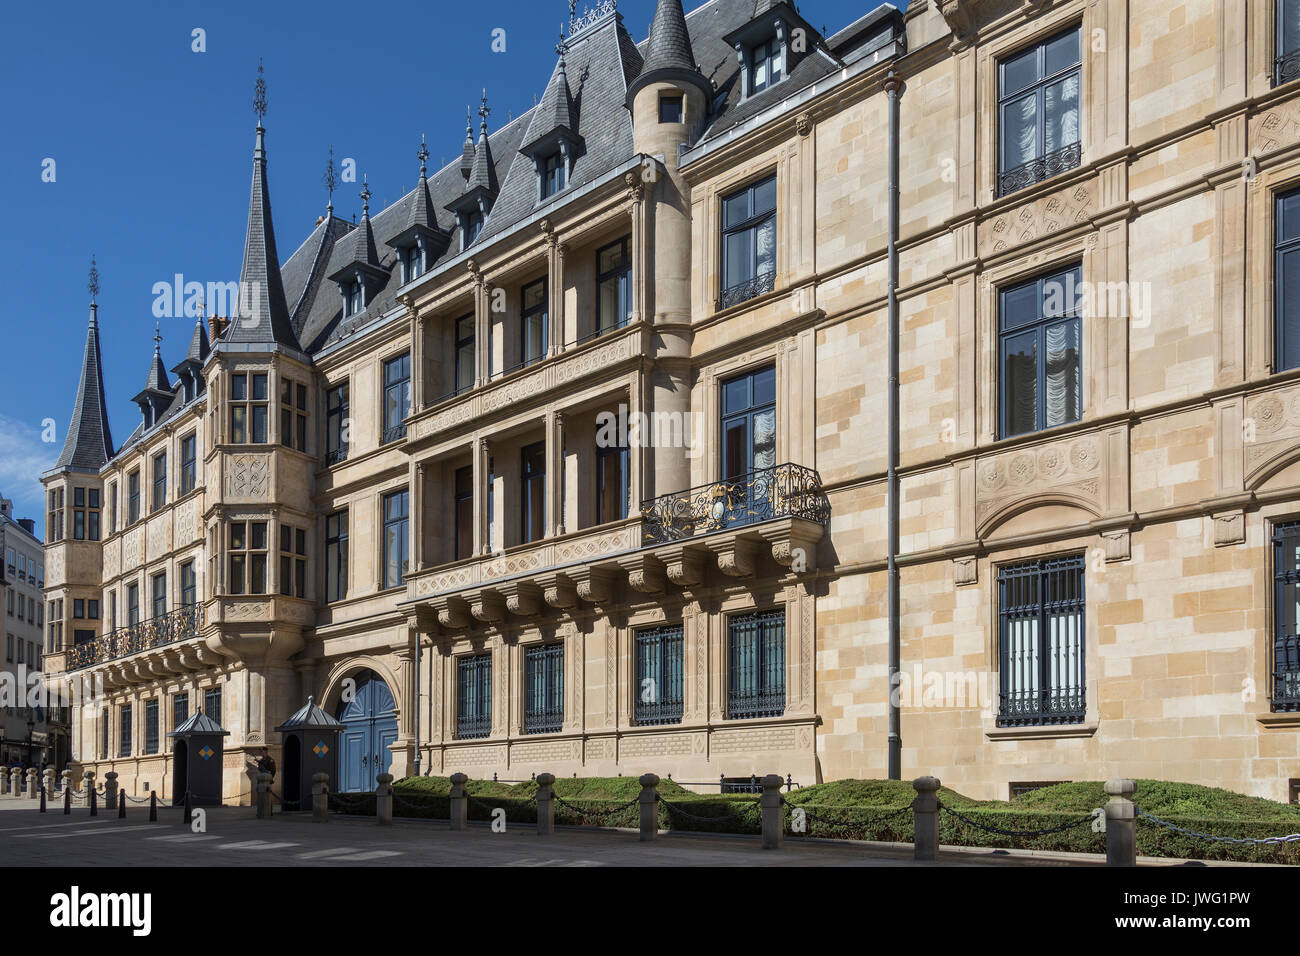 The Grand Ducal Palace in Luxembourg City in the Grand Duchy of Luxembourg. It is the official residence of the - Stock Image